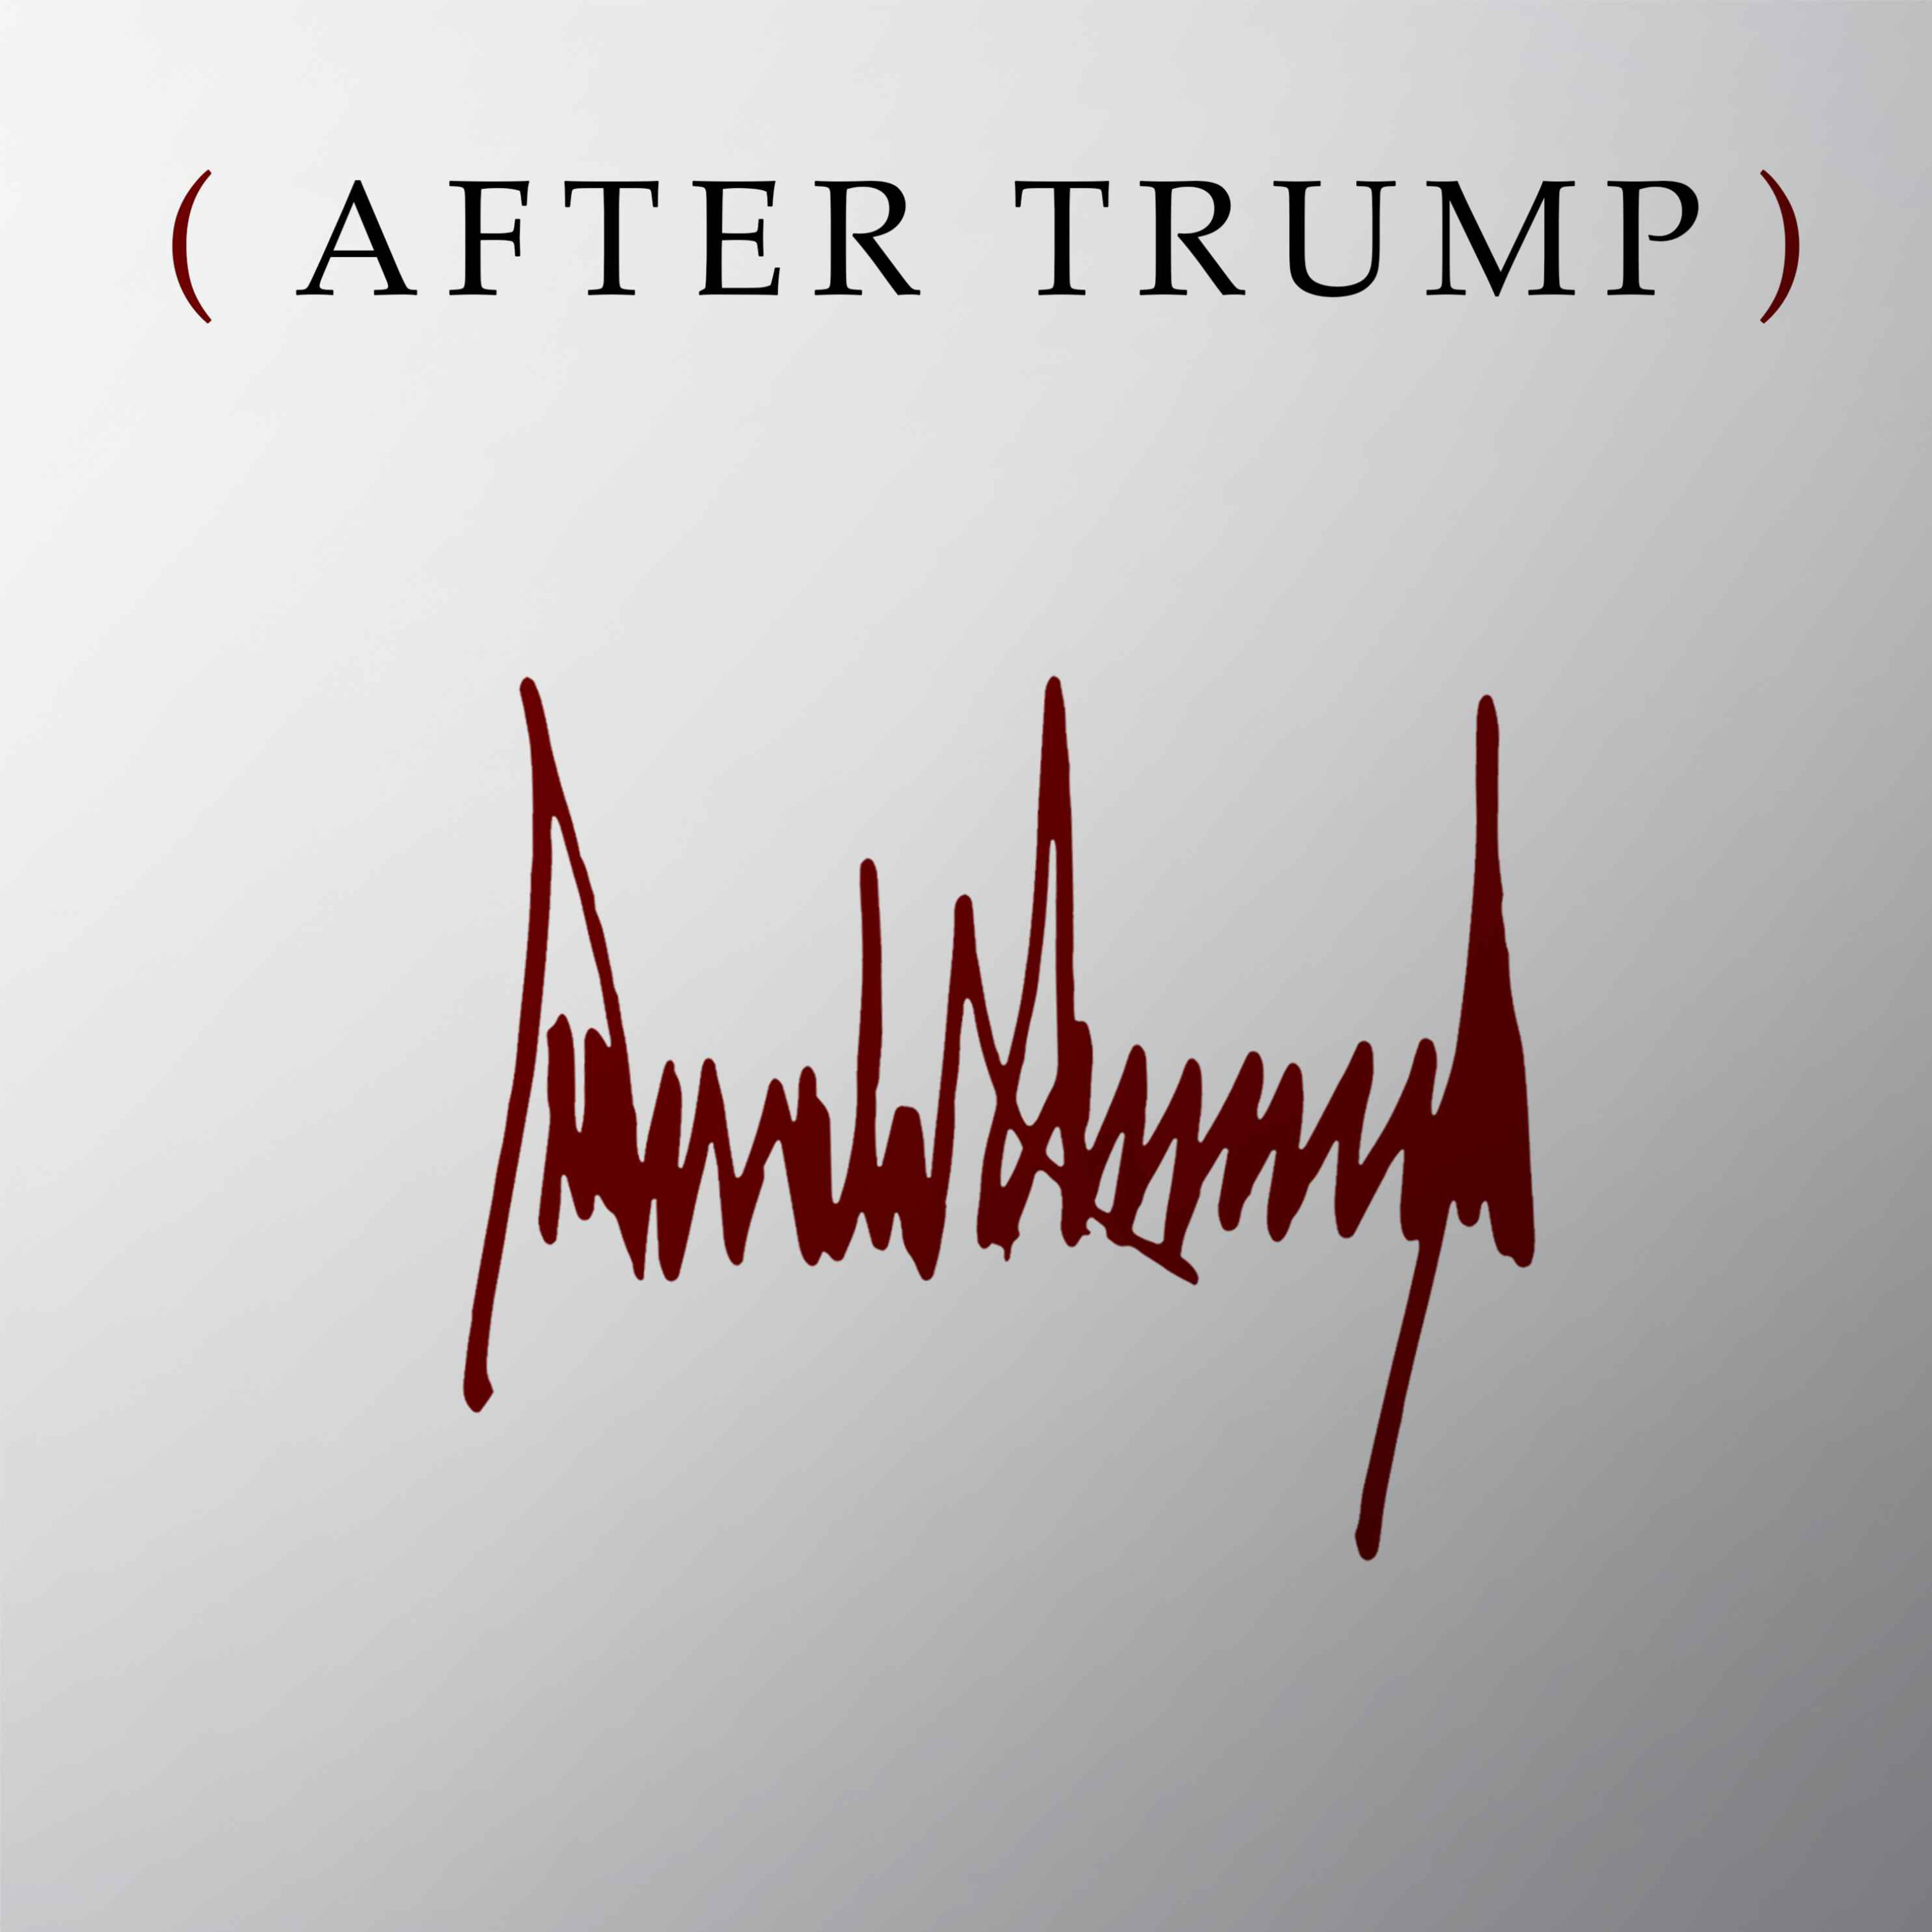 After Trump